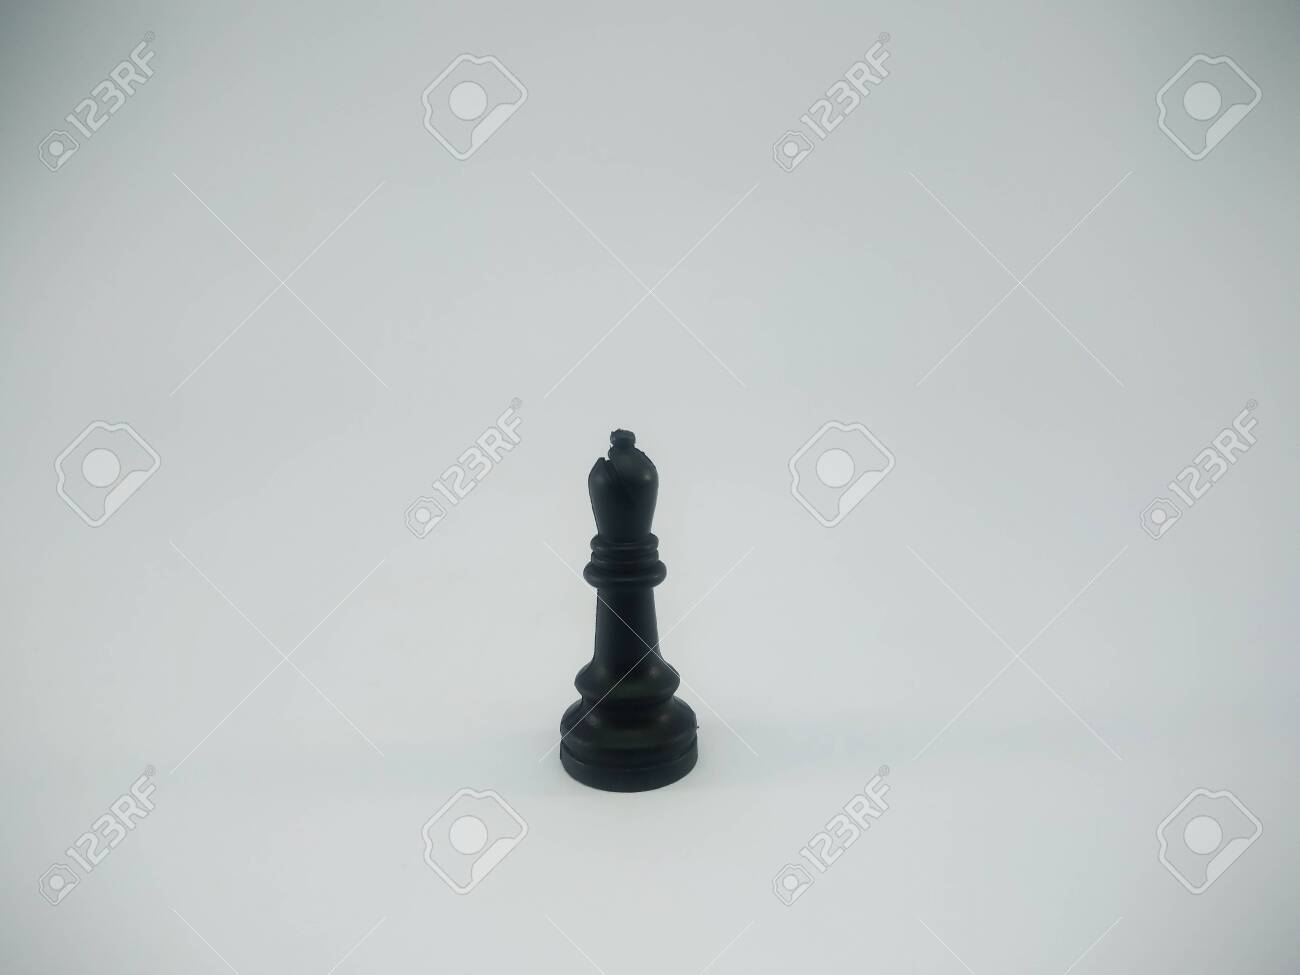 Black plastic bishop chess piece isolated on a white background - 140867025